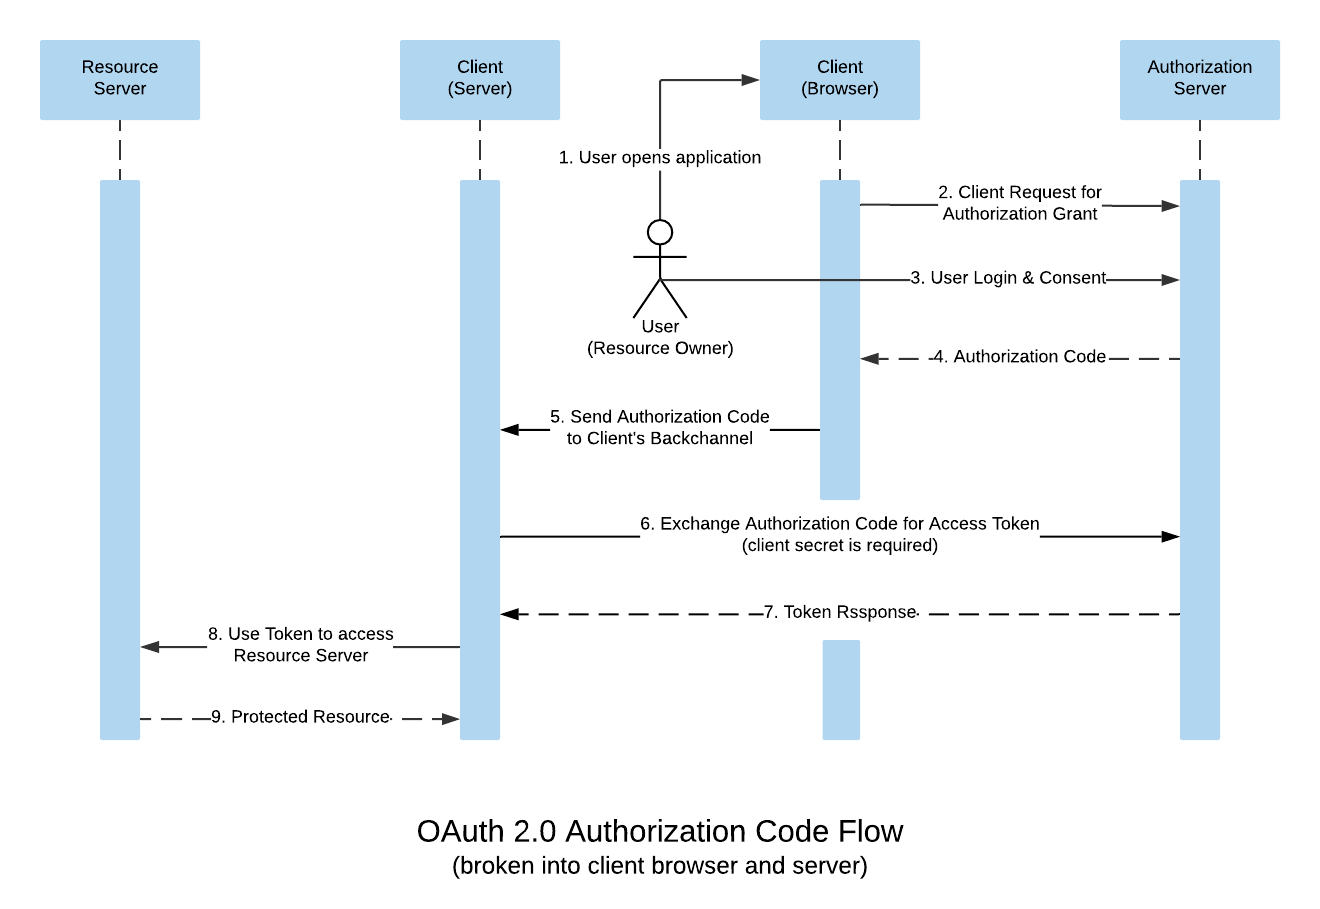 OAuth 2.0 Authorization Code Flow broken into Client browser & server to explain the reason behind exchanging code for token